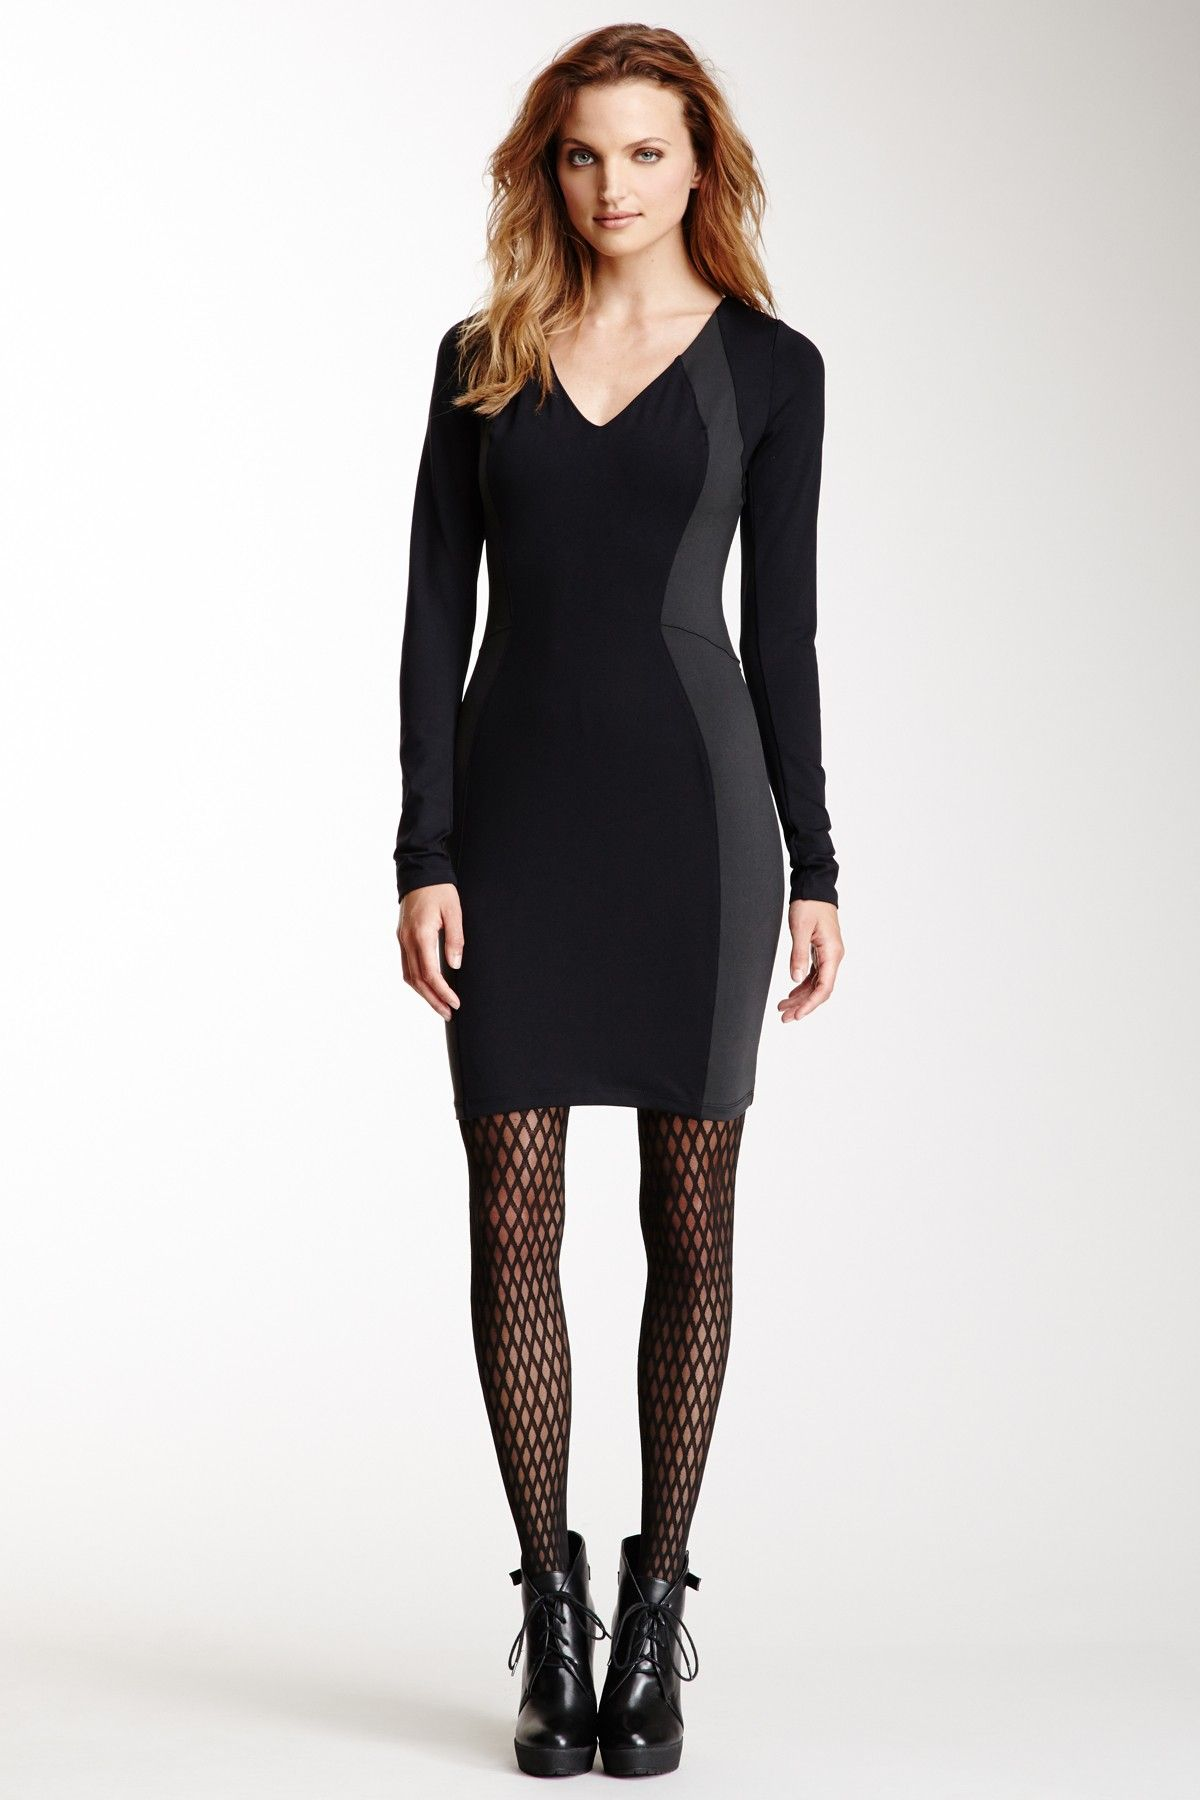 Shop these tights at www.fashion-tights.net #tights #pantyhose #hosiery #nylons #tightslegs #tightsfeet #tightslover #tightsblogger #tightsfashion #pantyhoselegs #pantyhosefeet #pantyhoselover #pantyhoseblogger #pantyhosefashion #nylonlegs #nylonfeet #nylonlover #nylonblogger #nylonfashion #hosierylover #hosierylegs #hosieryfeet #hosieryblogger #hosieryfashion #fashiontights #fashionpantyhose #fashionnylons #fashionhosiery #fashionlegs #legs #legwear #collant #strumpfhose